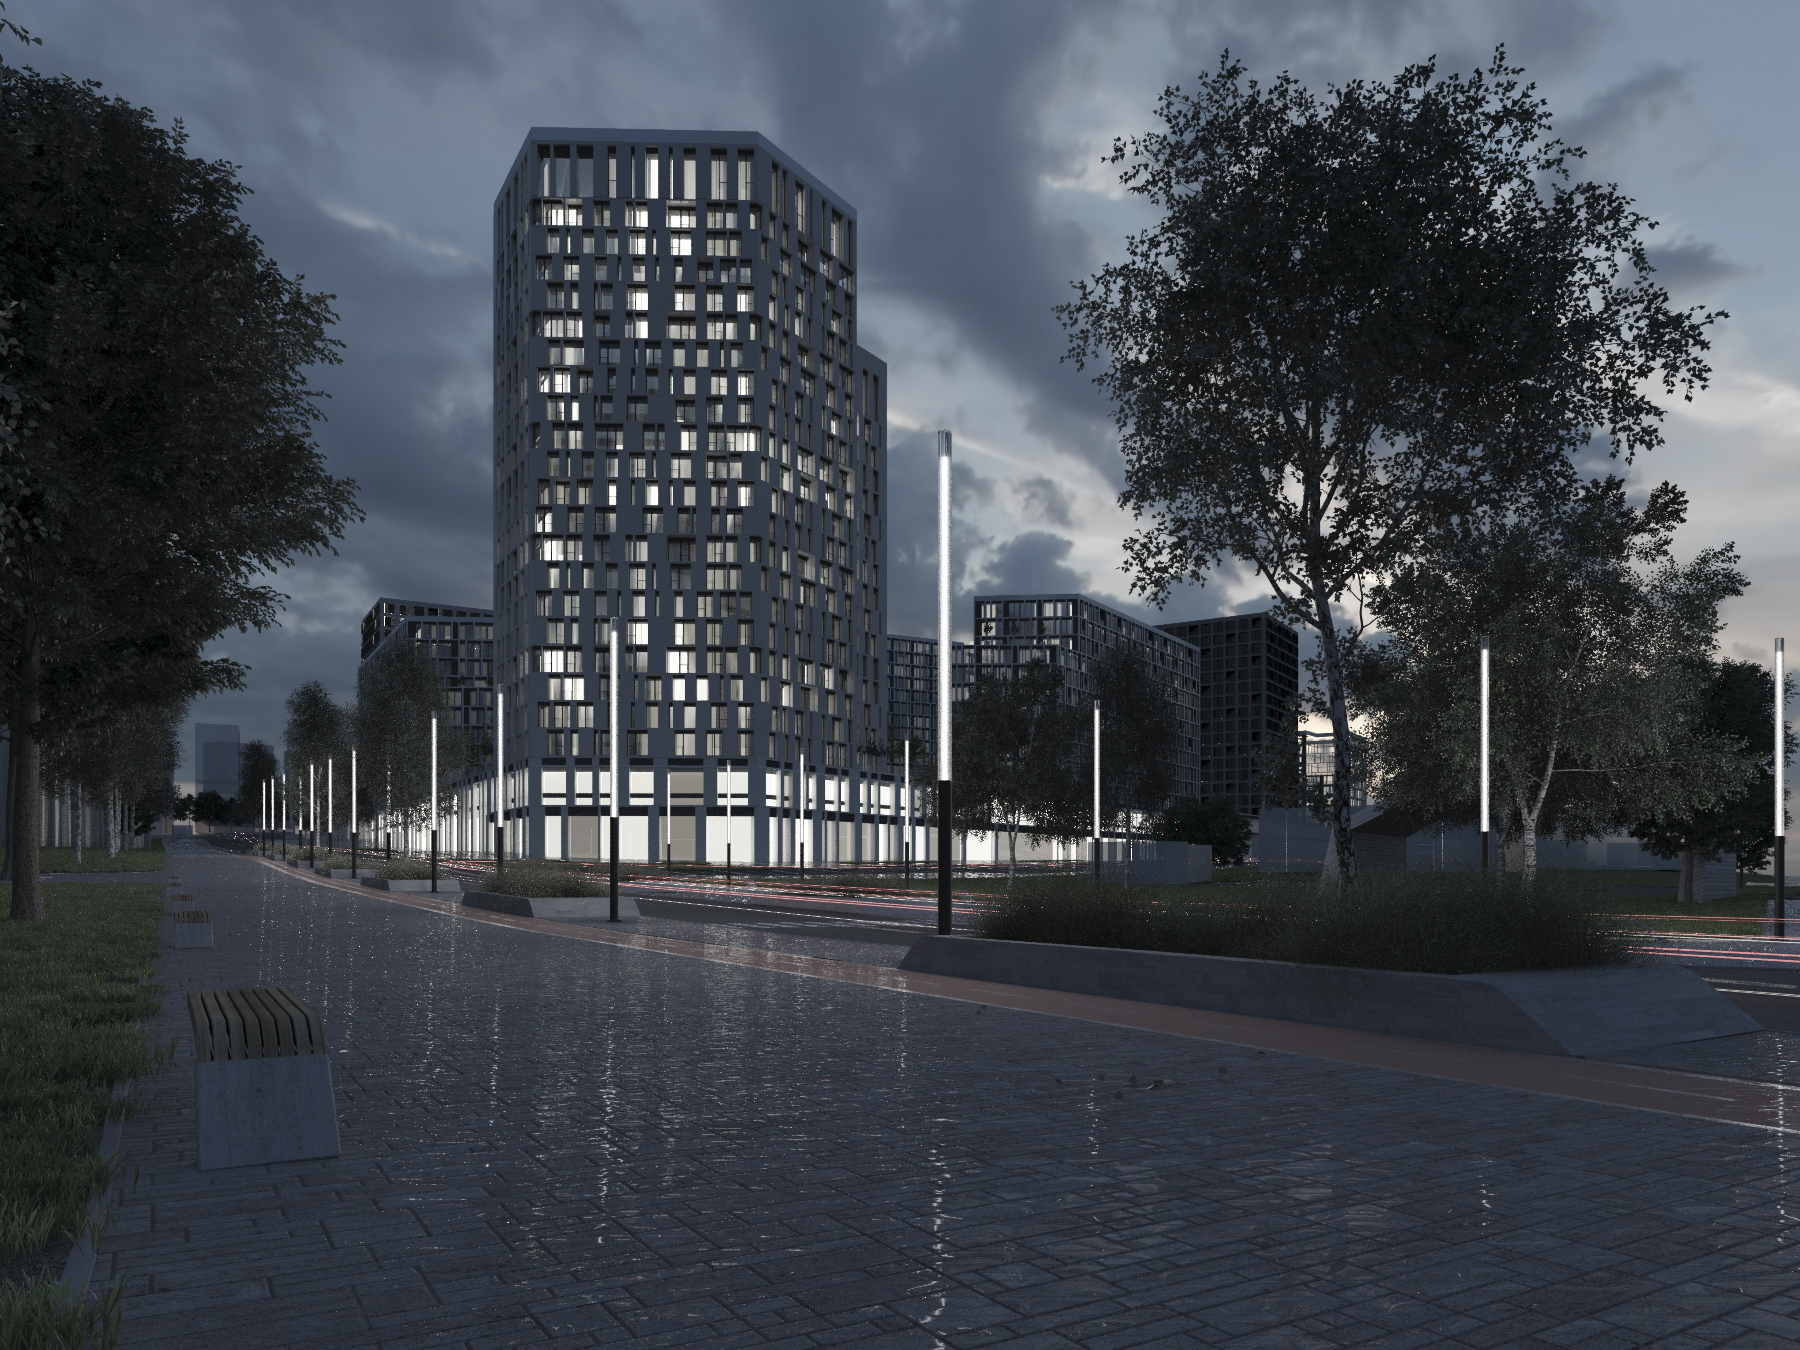 High building in the Netherlands